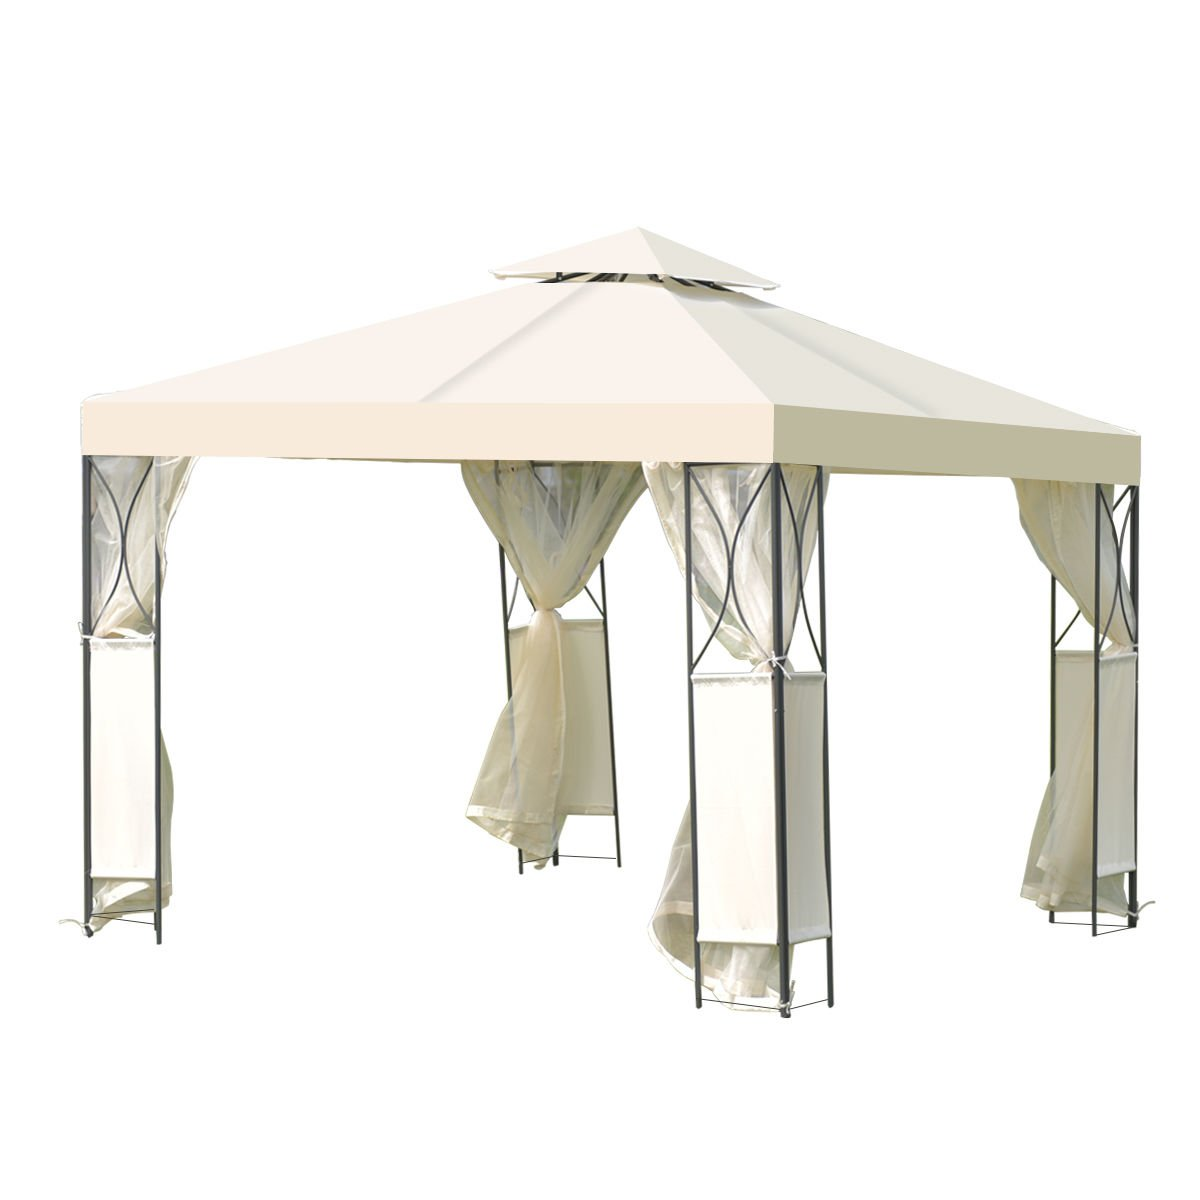 2-Tier 10'x10' Gazebo Canopy Tent Shelter Awning Steel Patio Garden Beige Cover + FREE E-Book